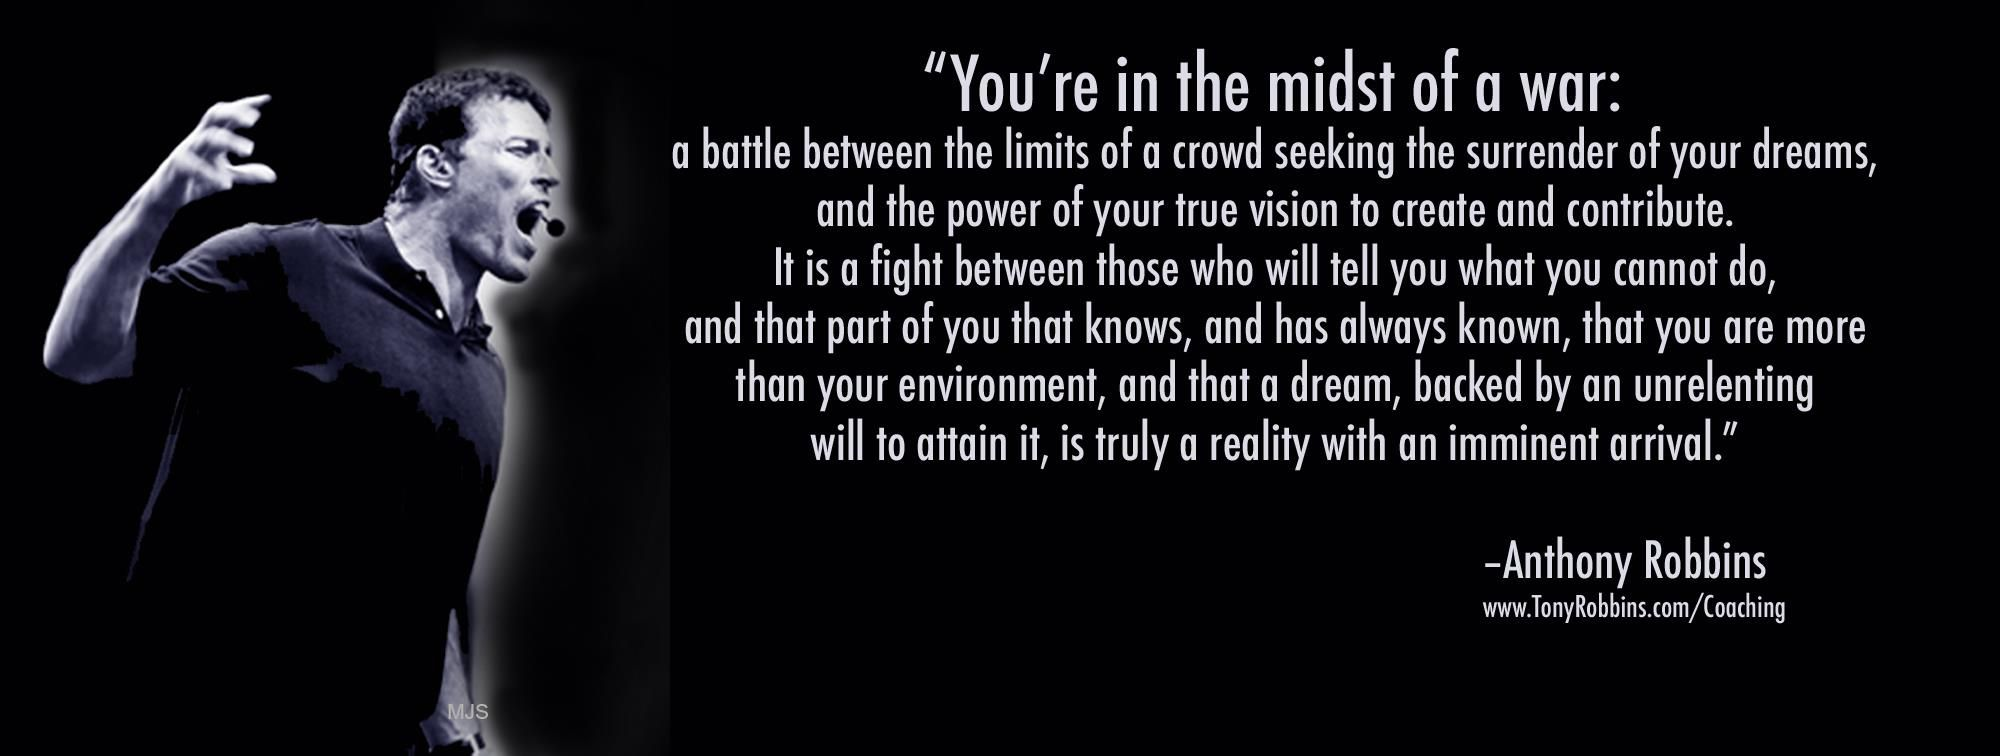 You Re In The Midst Of A War A Battle Between The Limits Of A Crowd Seeking The Surrender Of Your D Empowering Quotes Inspirational Words Tony Robbins Quotes